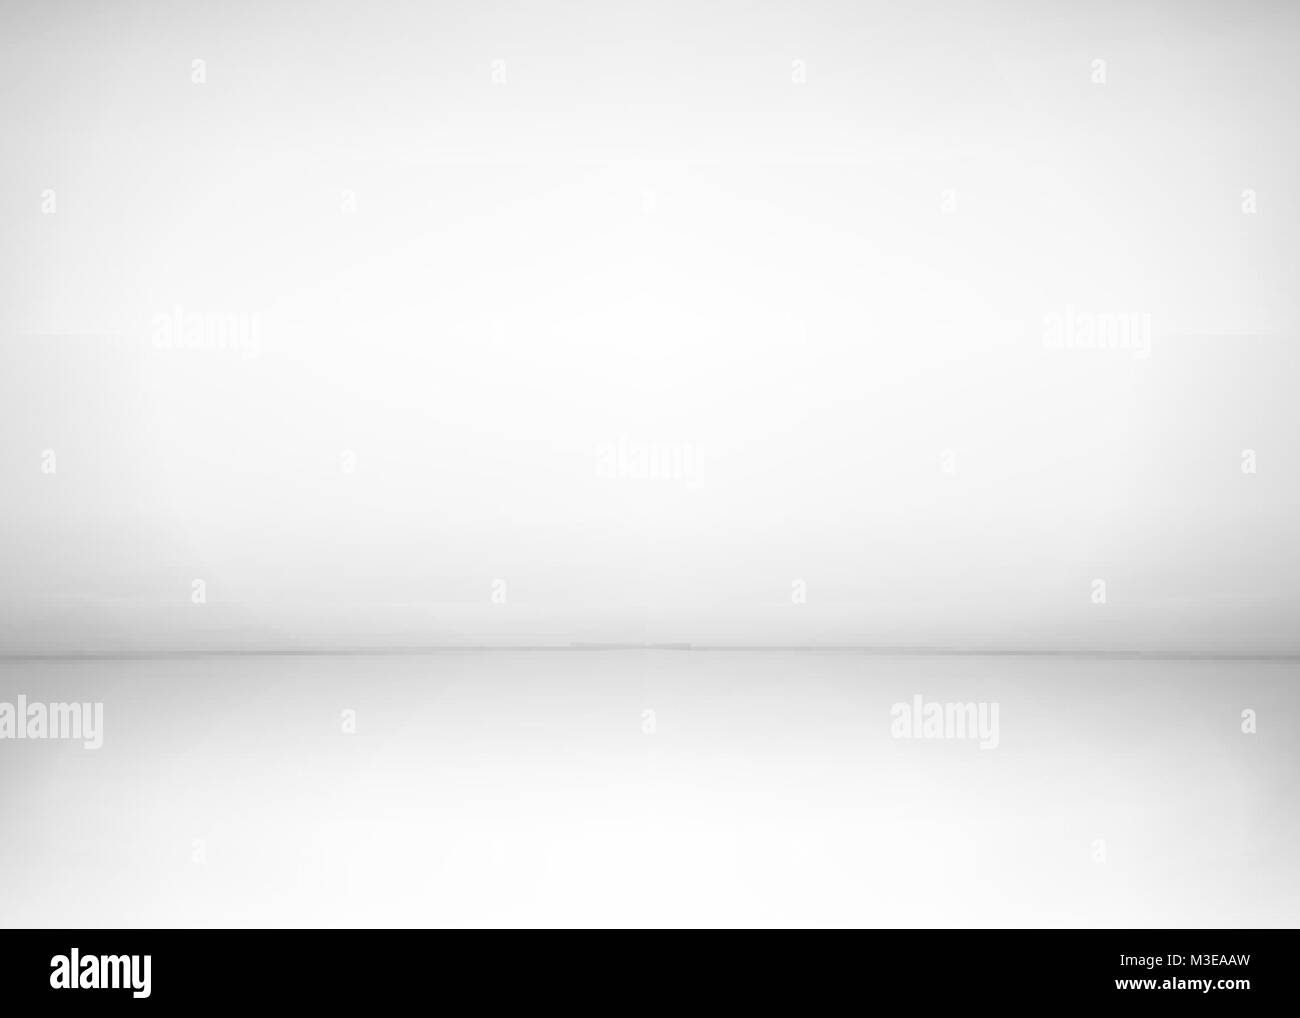 Studio room interior. White wall and floor background. Clean workshop for photography or presentation. Vector illustration - Stock Vector